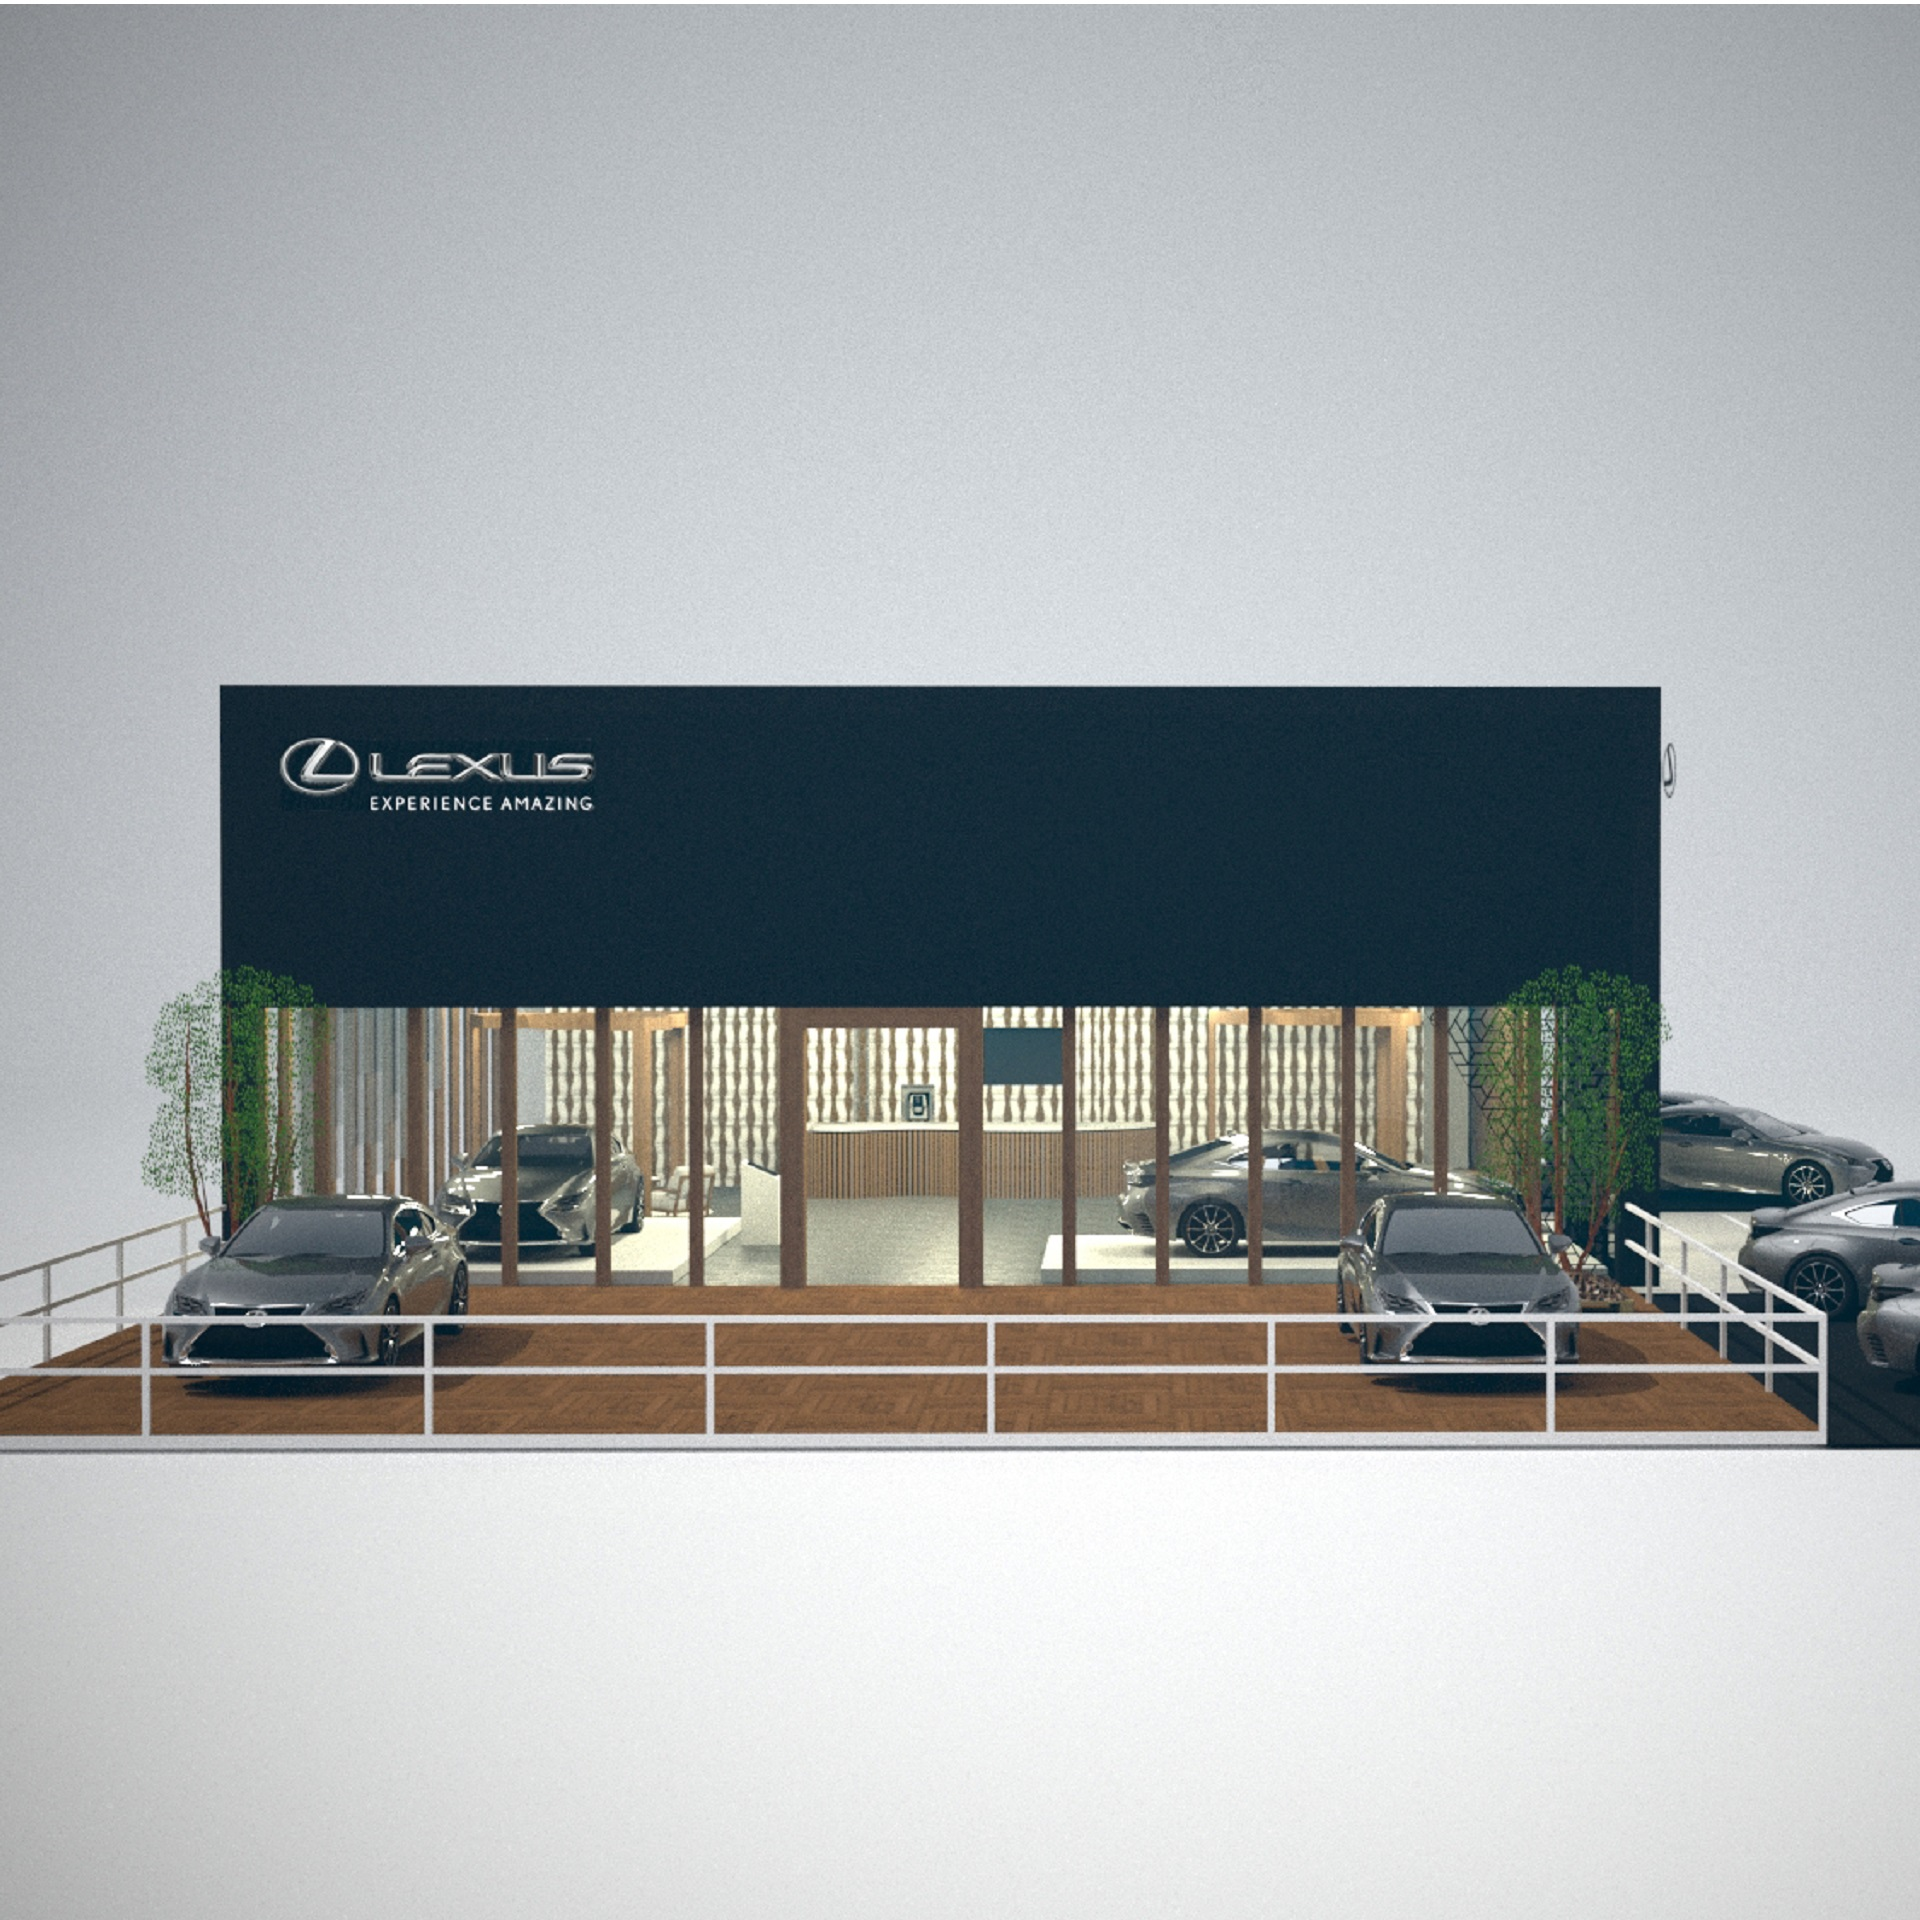 Knokke Le Zoute Next Steps replacement image